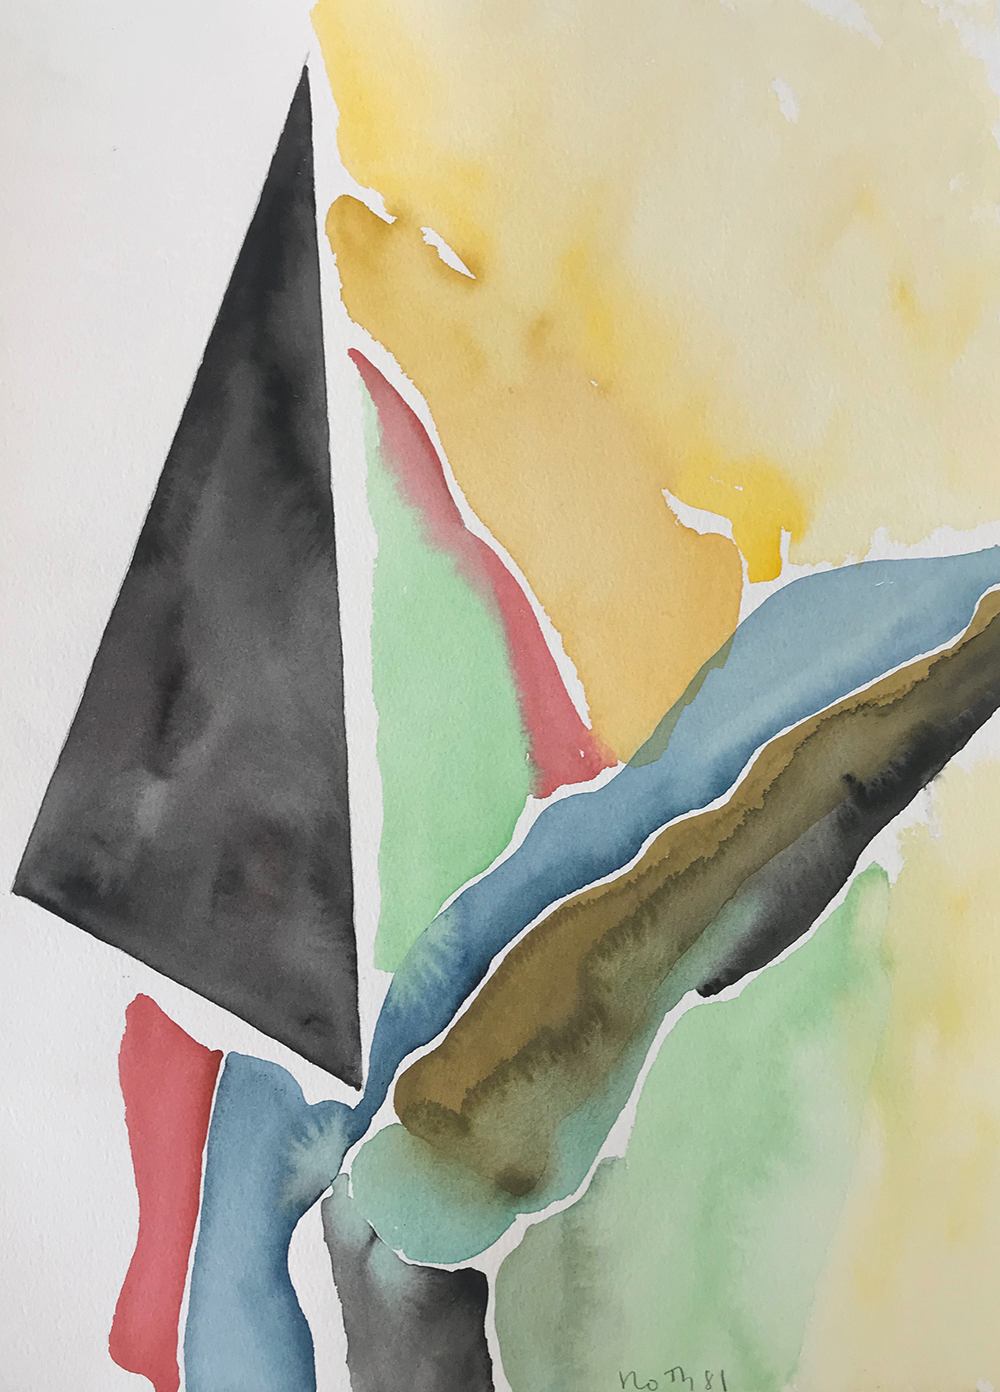 #2876 Untitled,   Watercolor on paper, 1981, 15 1/4 x 11 inches